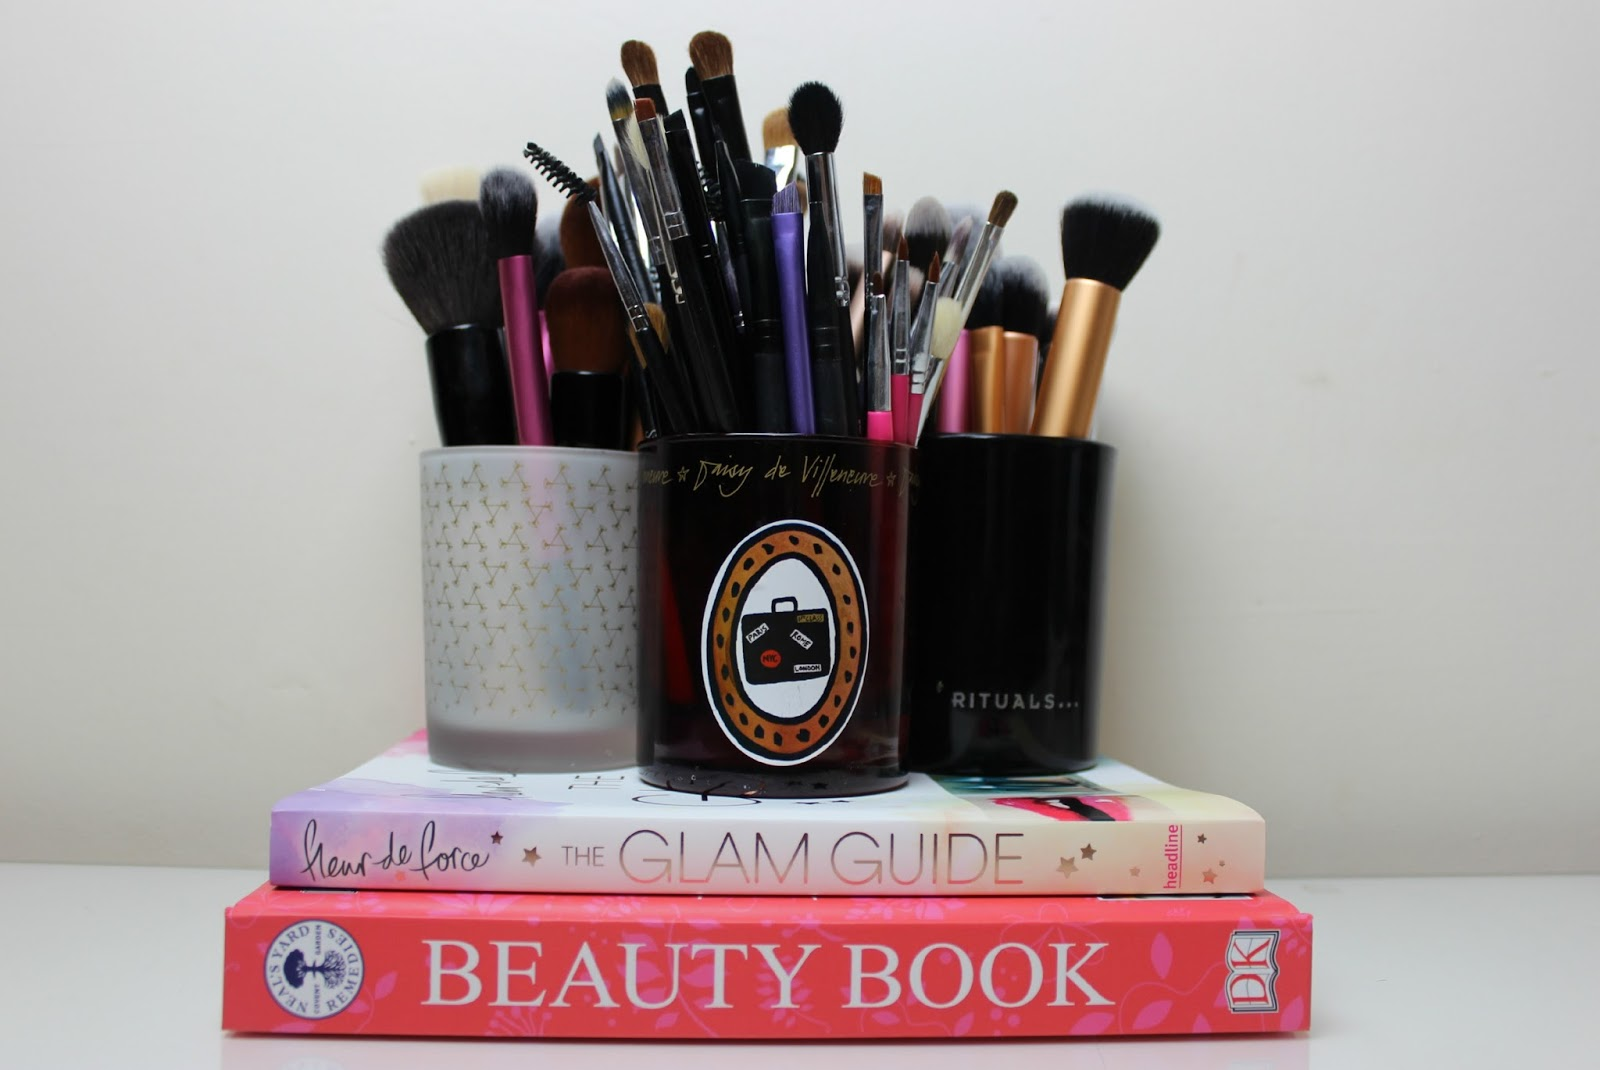 A picture of makeup brushes, candles and beauty books